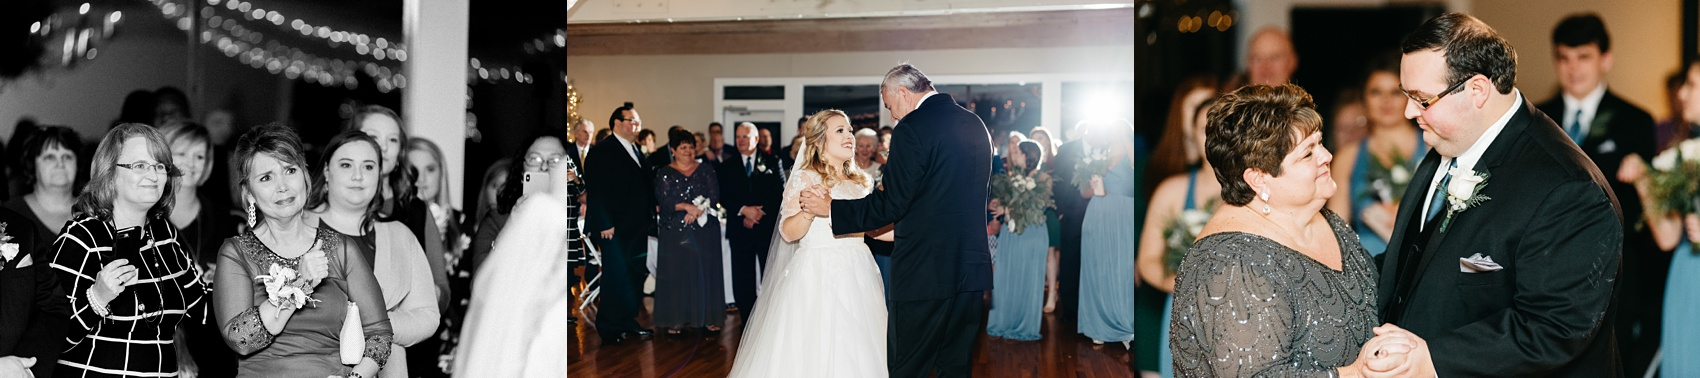 aiken_wedding_photographer_5087.jpg